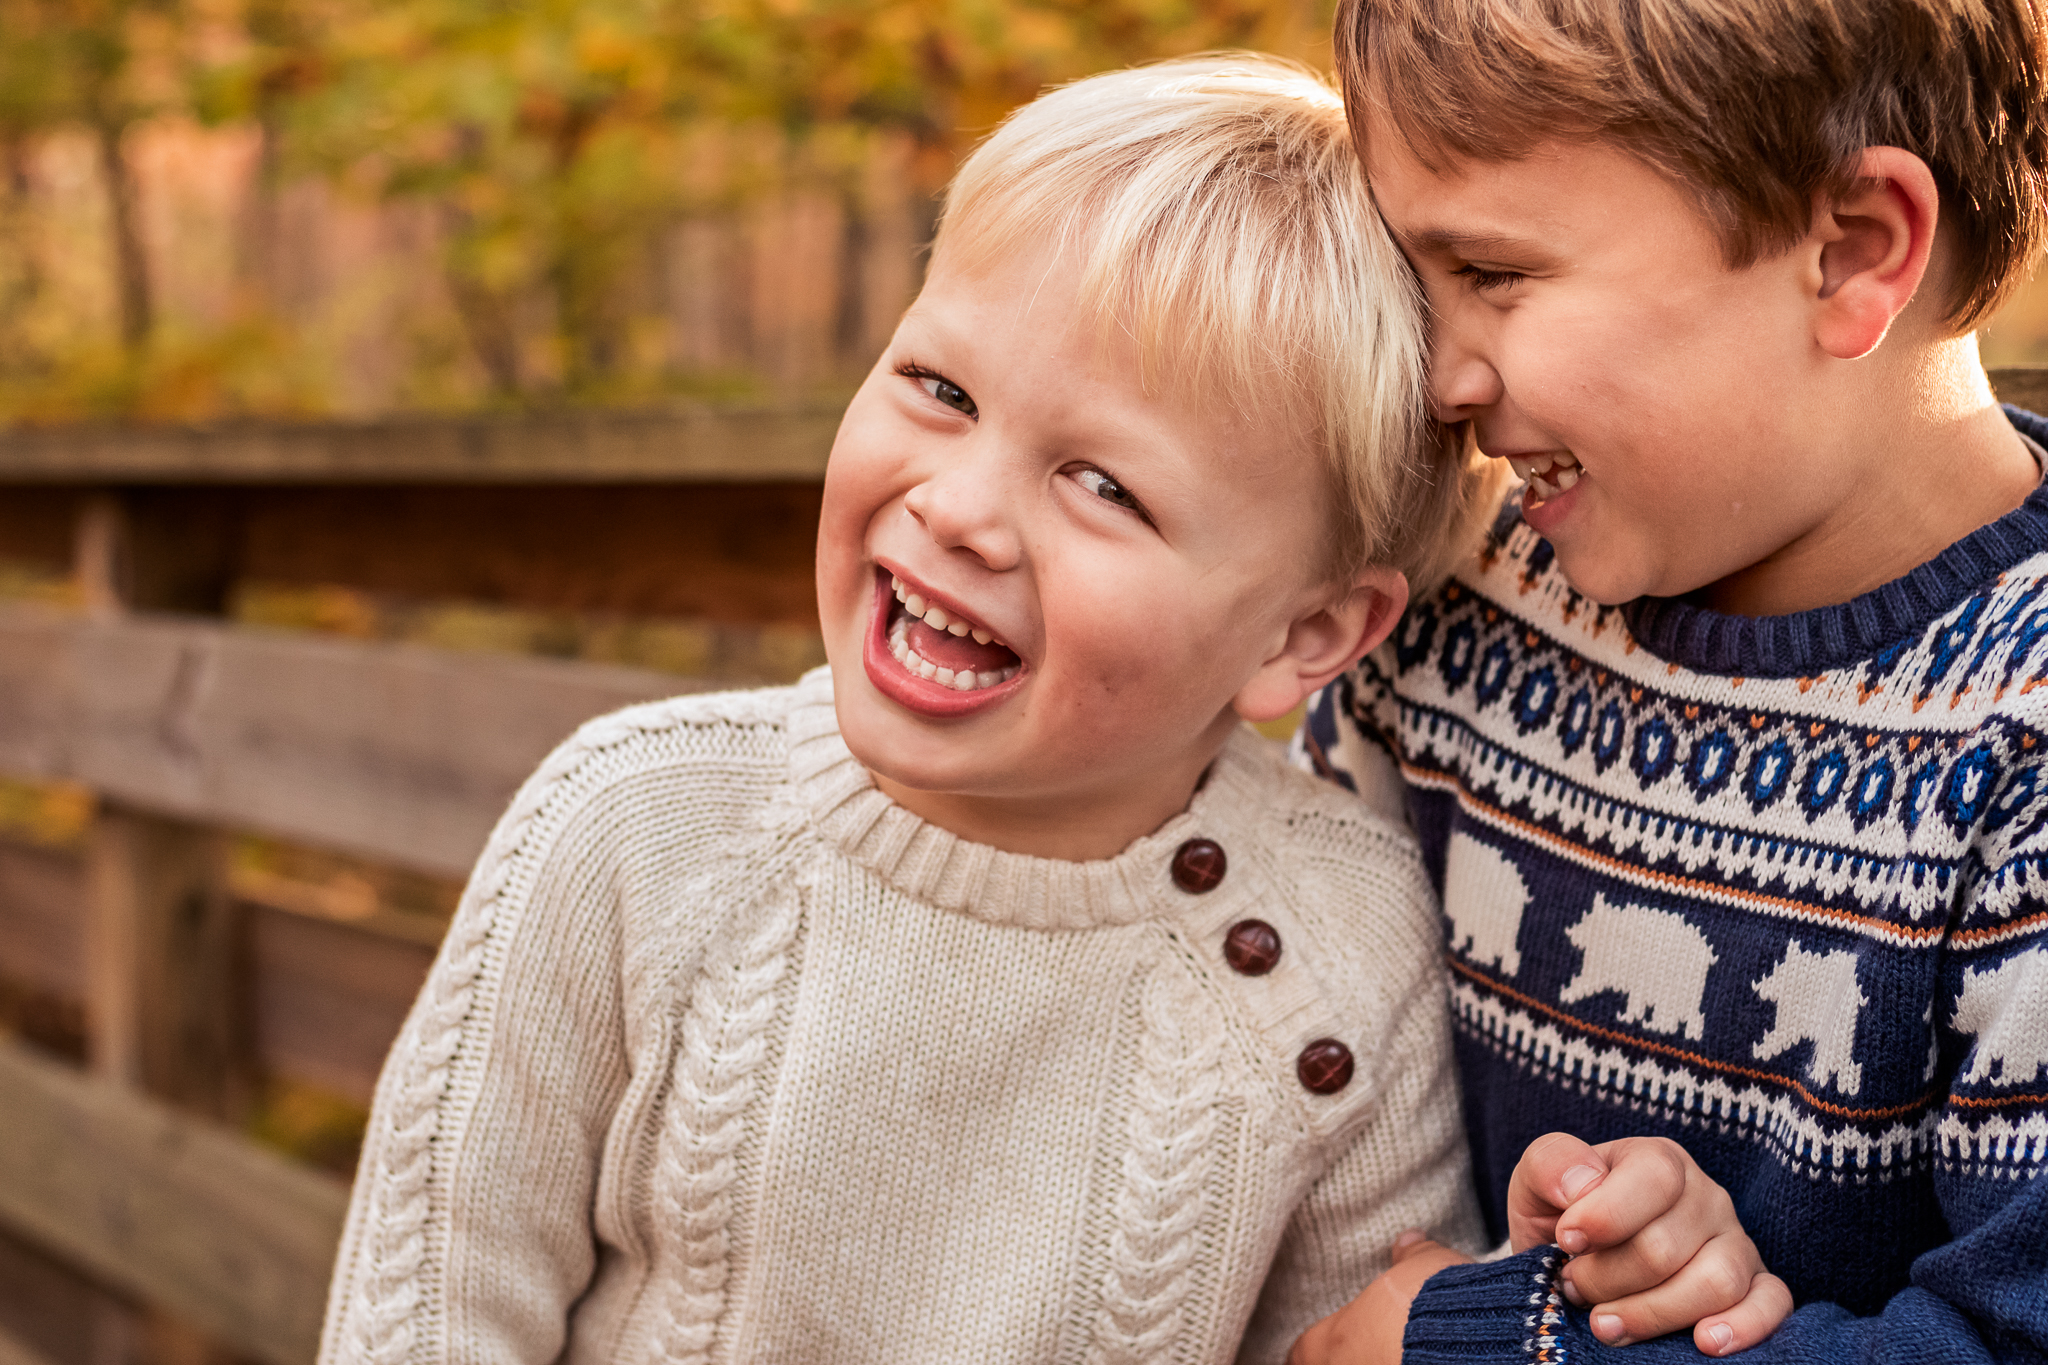 New Jersey Family Photographer, Nancy Elizabeth Photography, Brothers Laughing